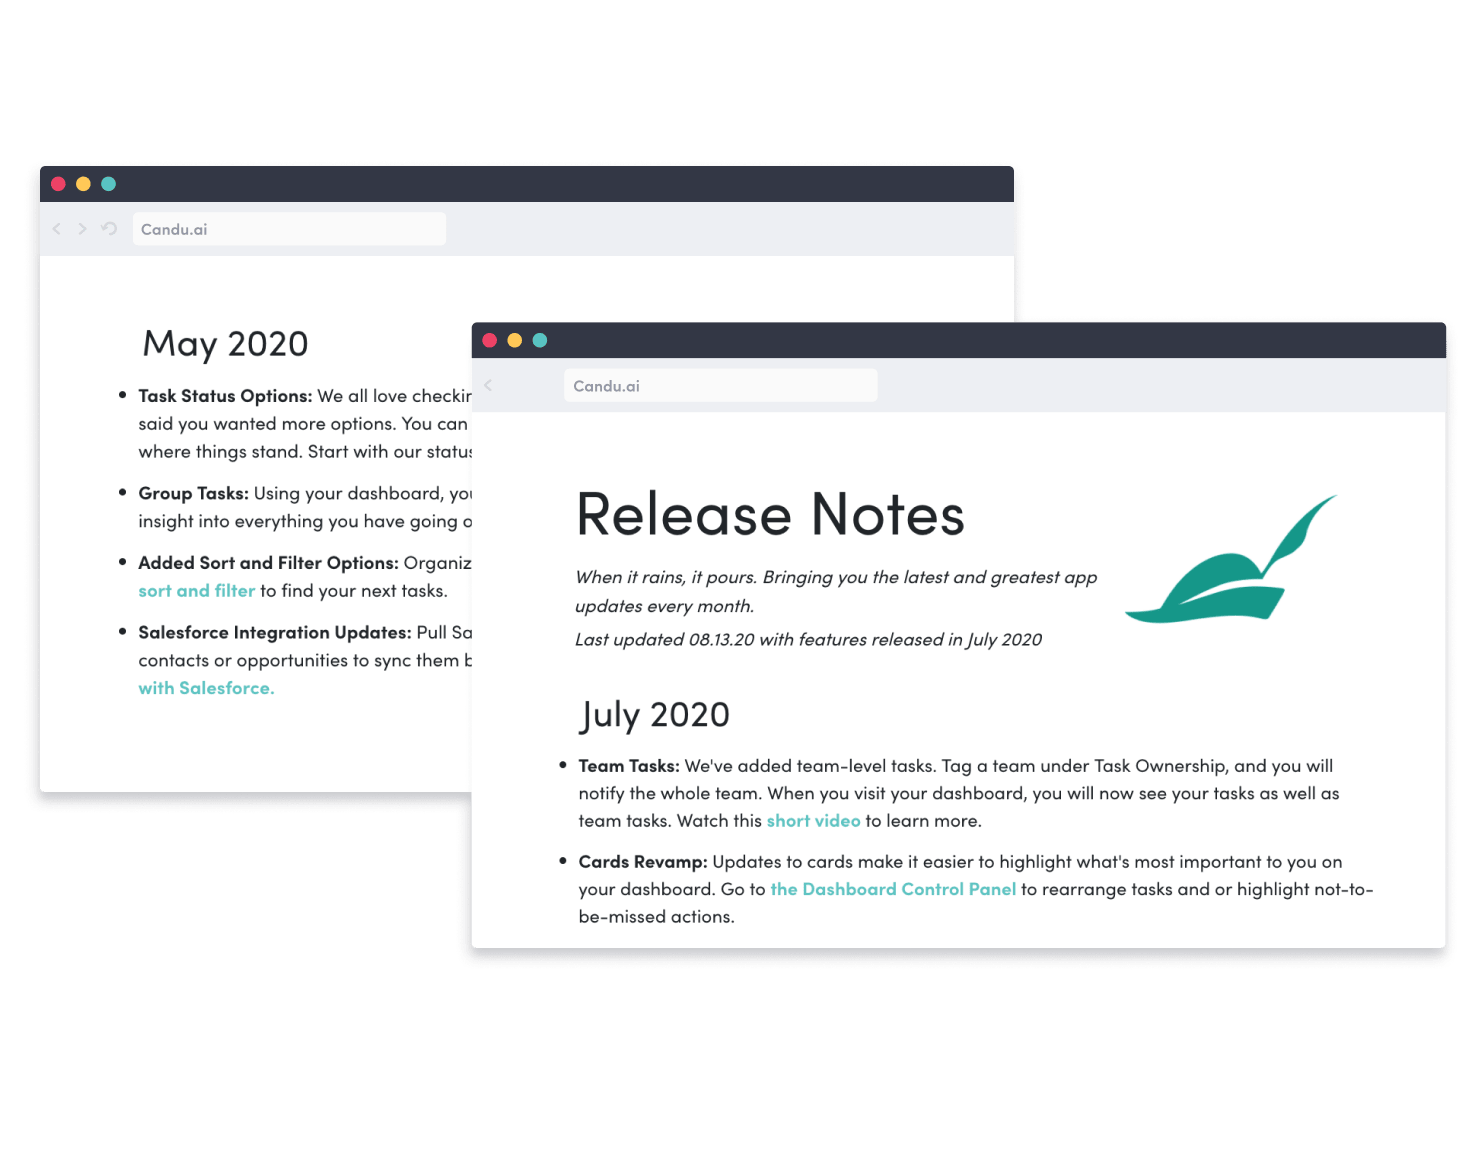 Product marketing with content management system. Discover features like customizable release notes, changelogs, and notification centers for product marketing CMS